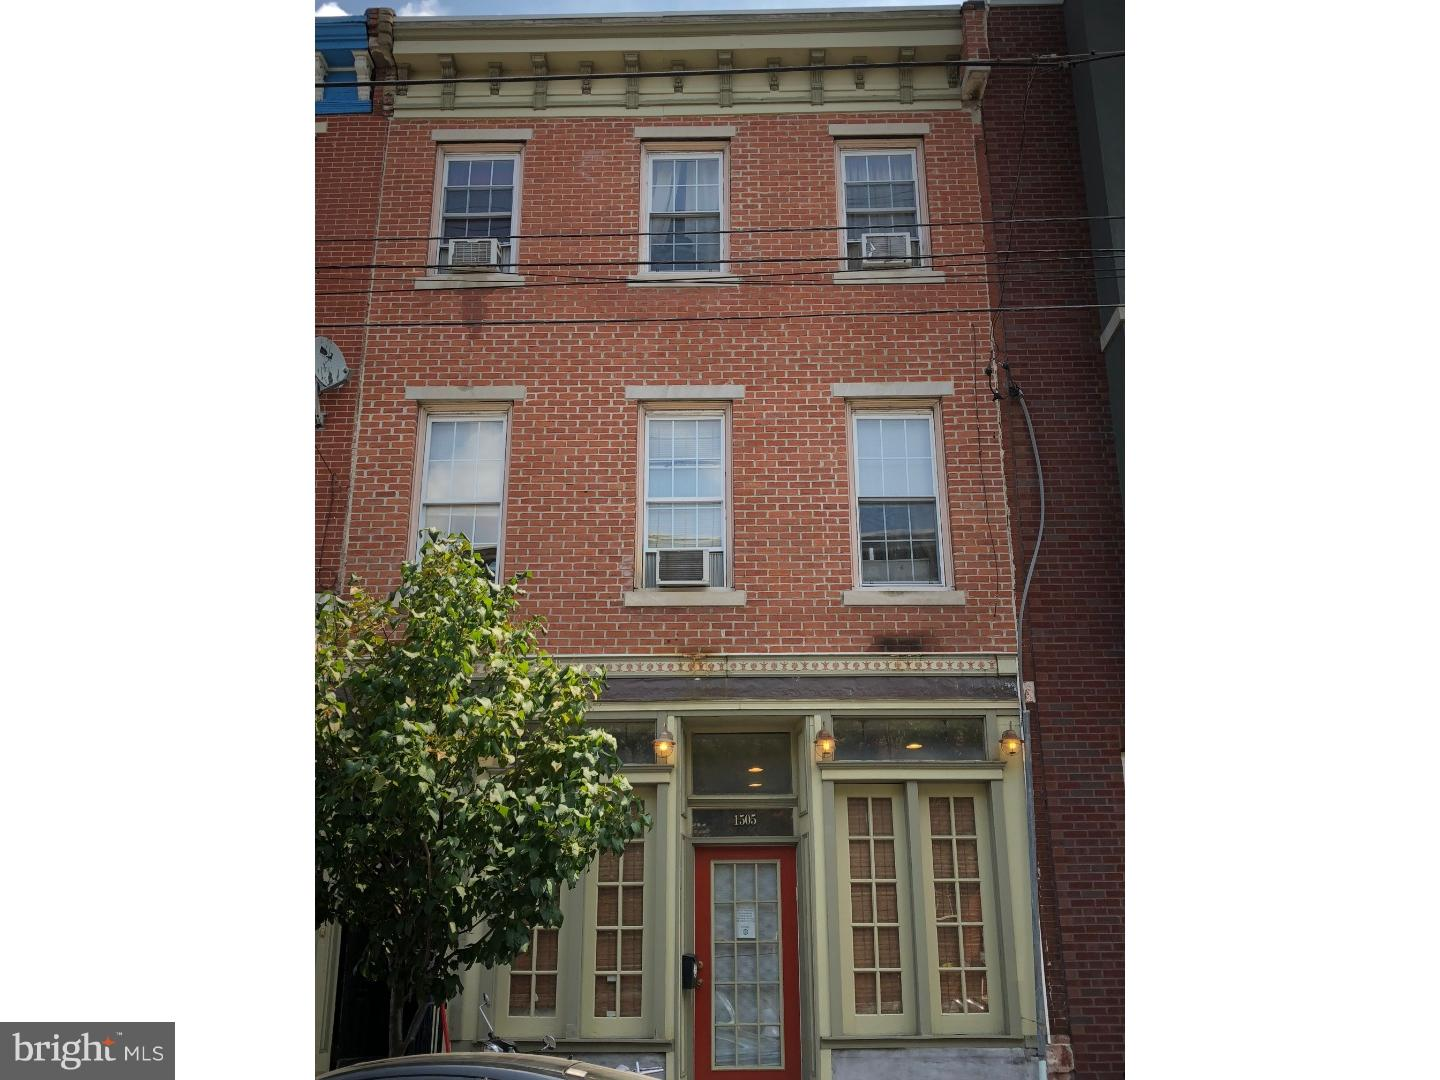 1503 S 5TH Street Philadelphia, PA 19147